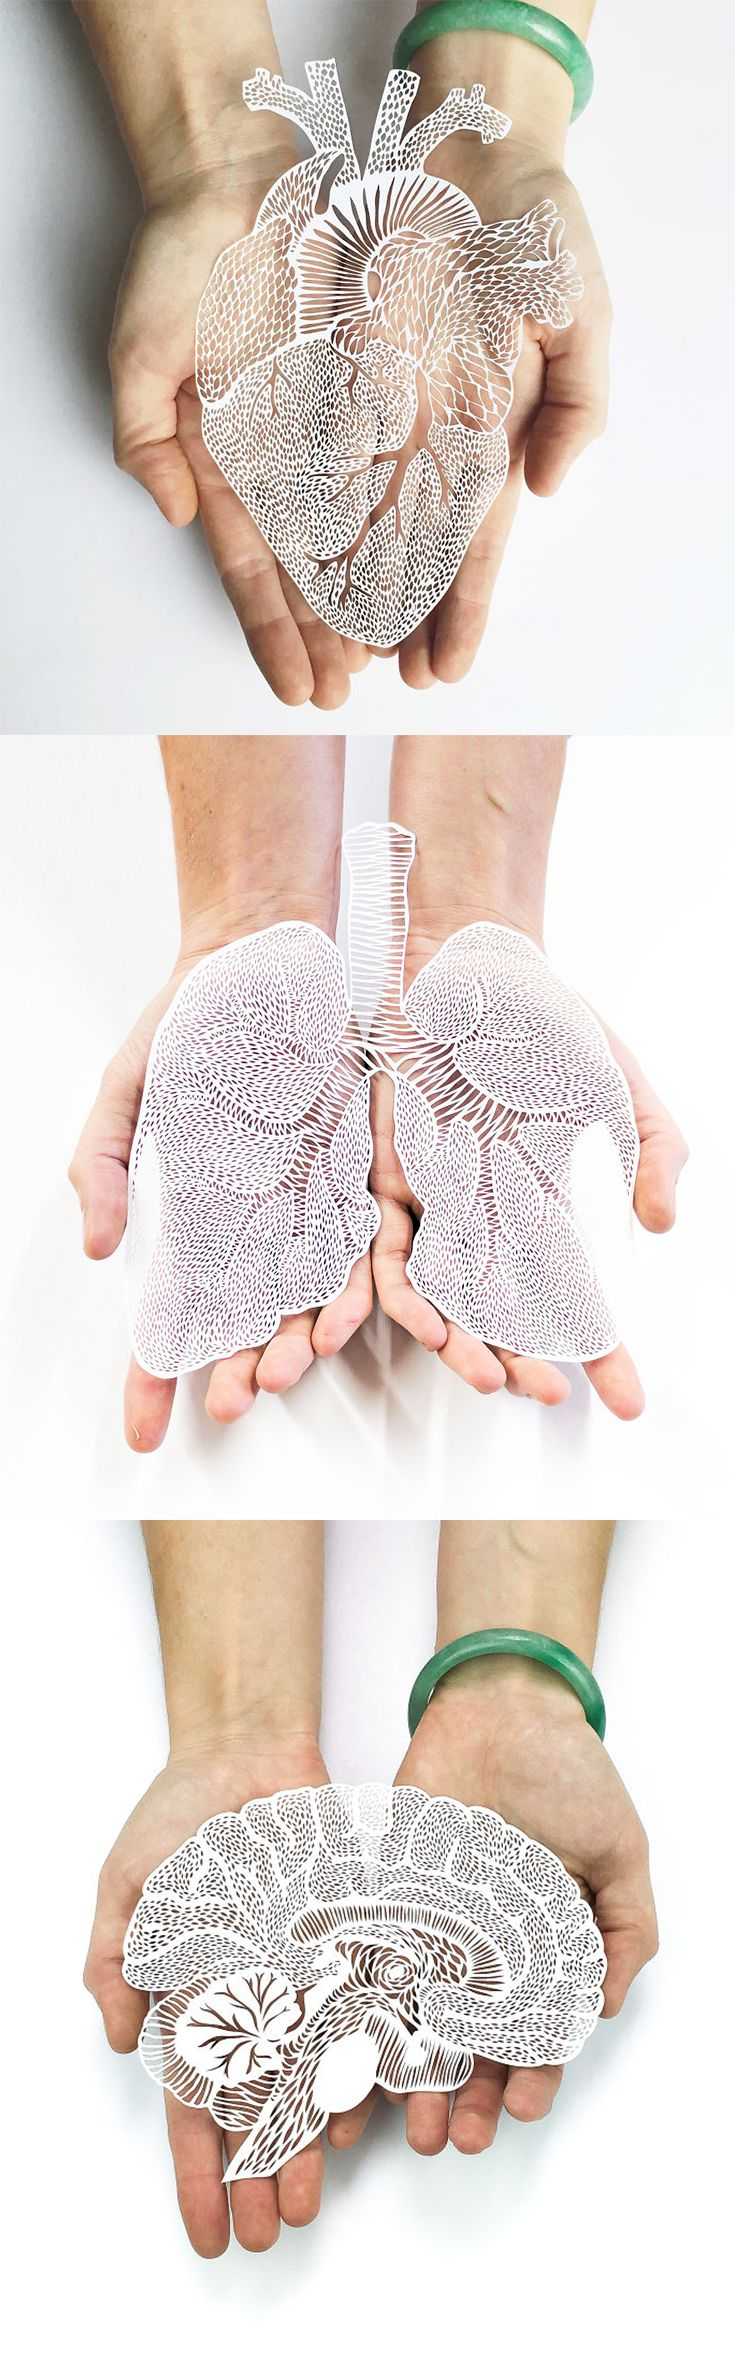 Click for more pics! Intricately Detailed Hand-Cut Anatomical Organs Out Of Paper by Ali Harrison #paperart